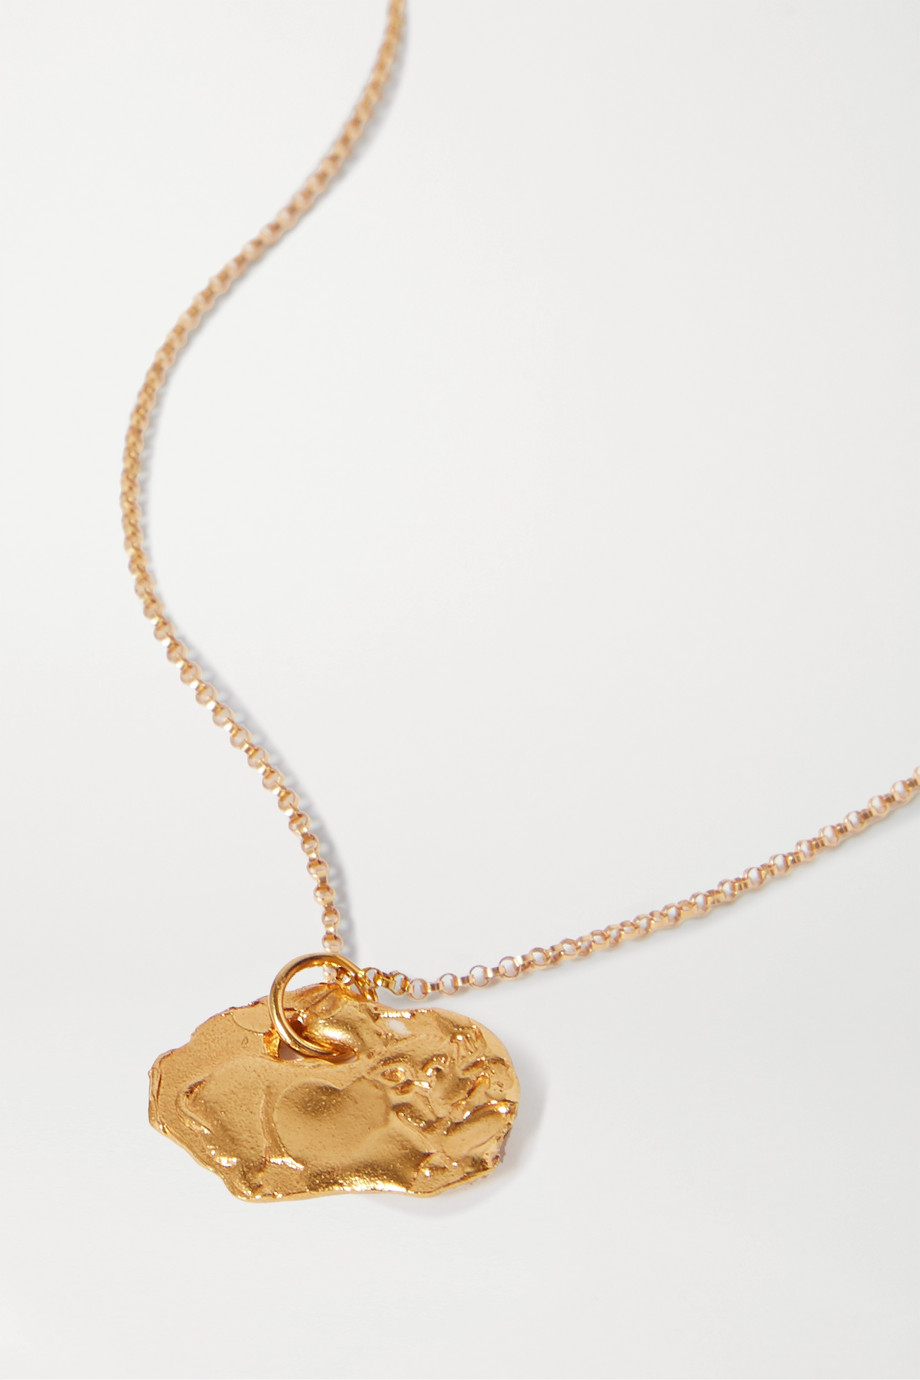 Alighieri Year of the Pig gold-plated necklace